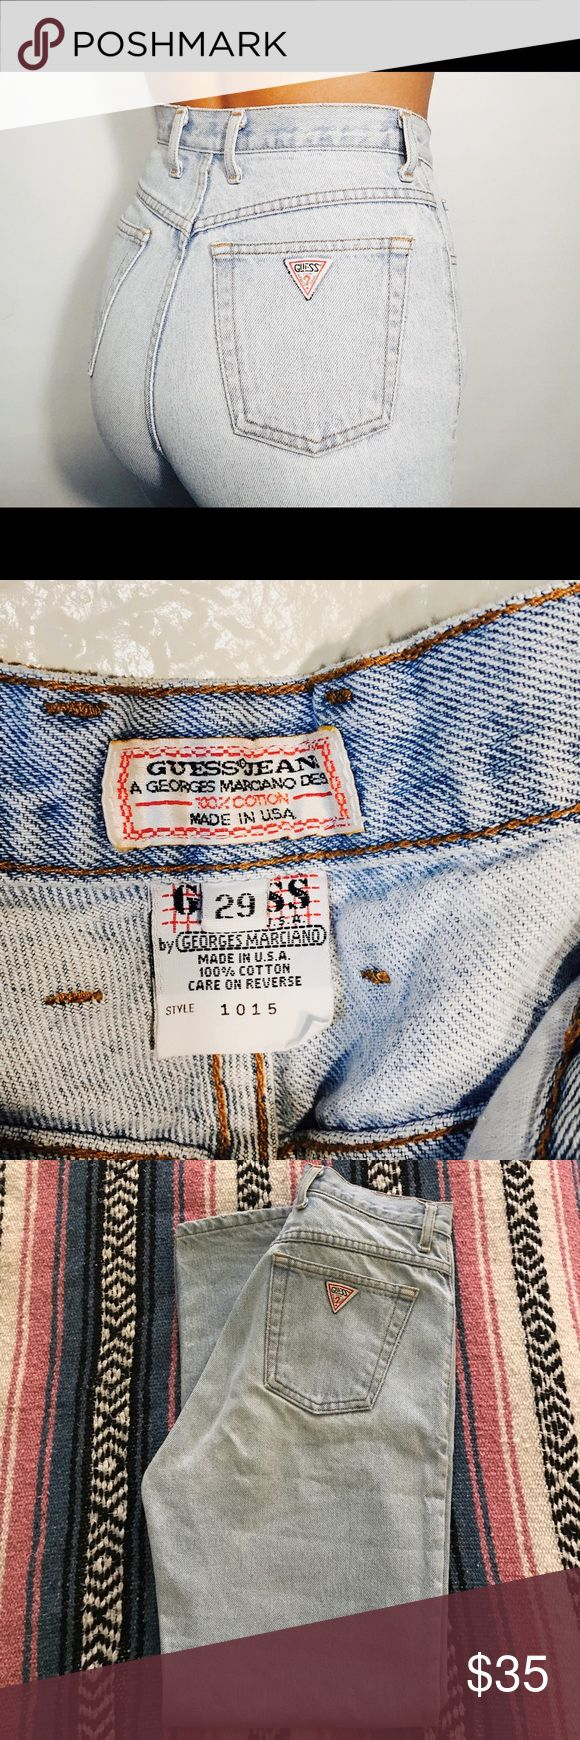 """Guess Marciano jeans Guess Marciano vintage """"mom jeans"""" ankle zipper, classic triangle logo. Guess by Marciano Jeans"""